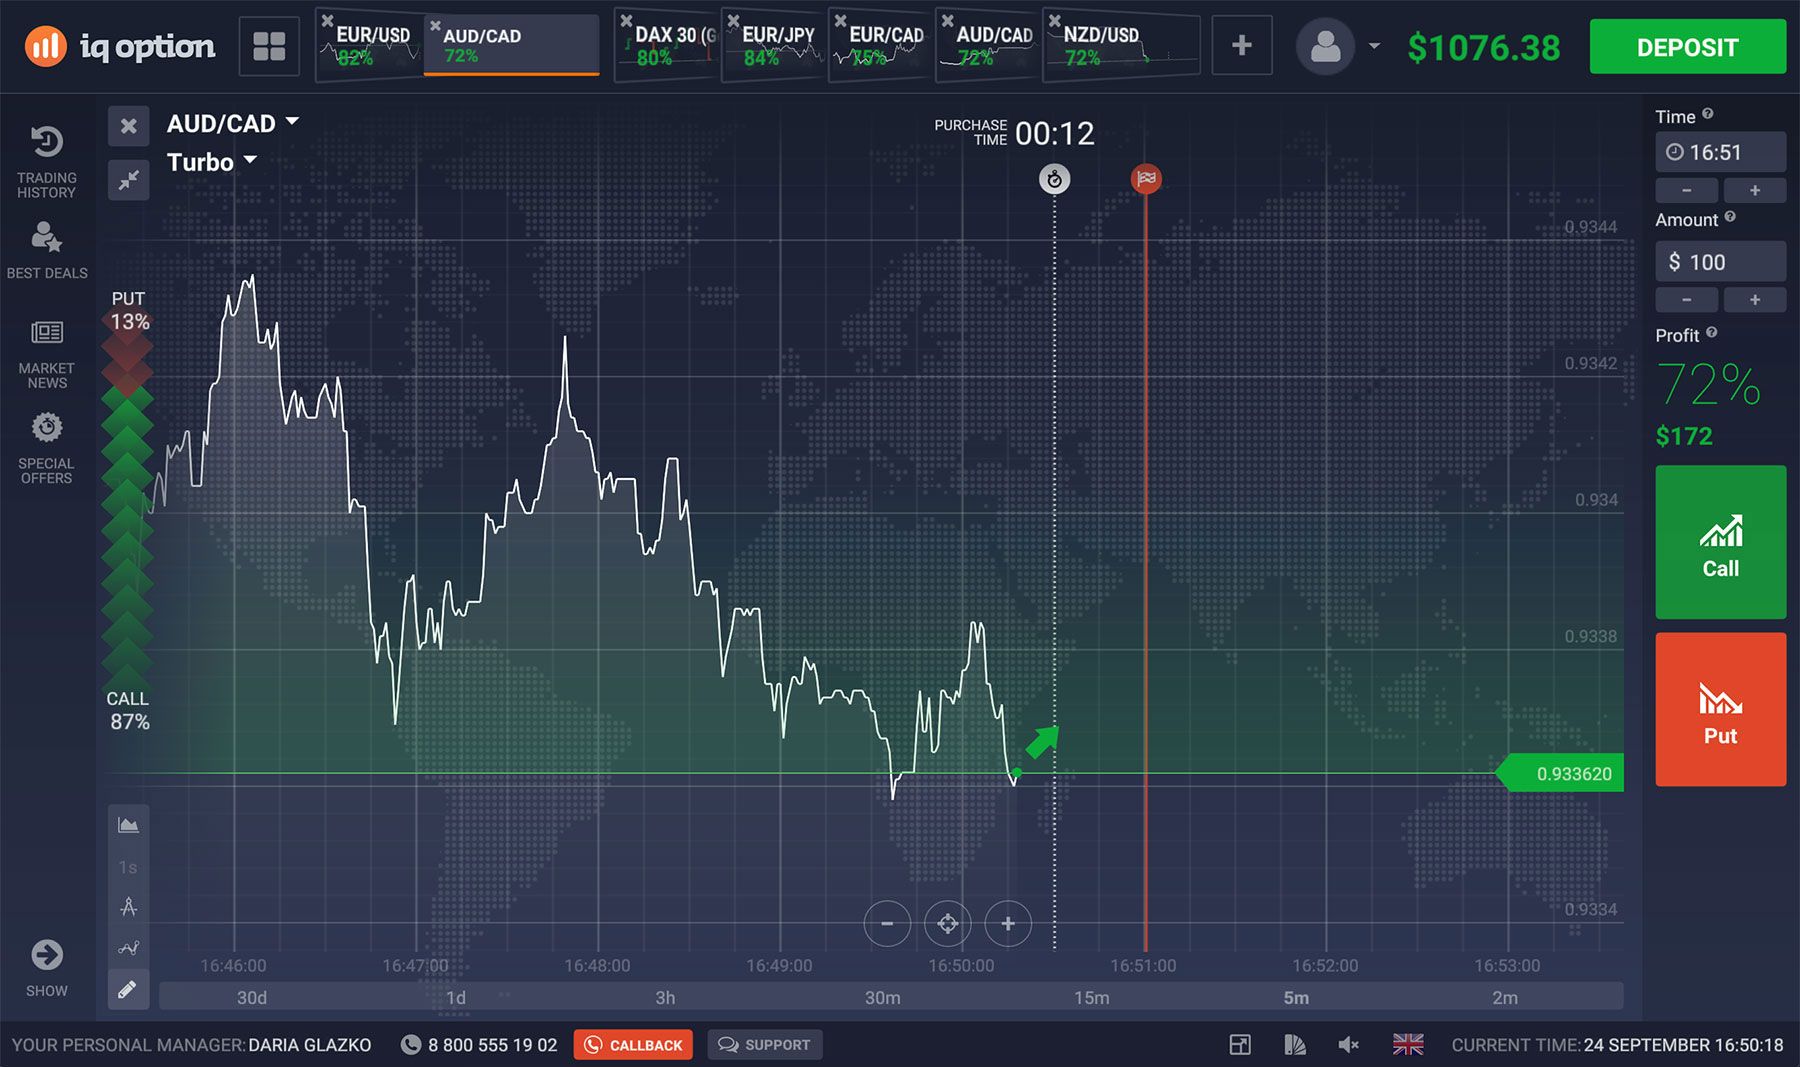 IQ Options Review 2020 - Is This Broker Safe?